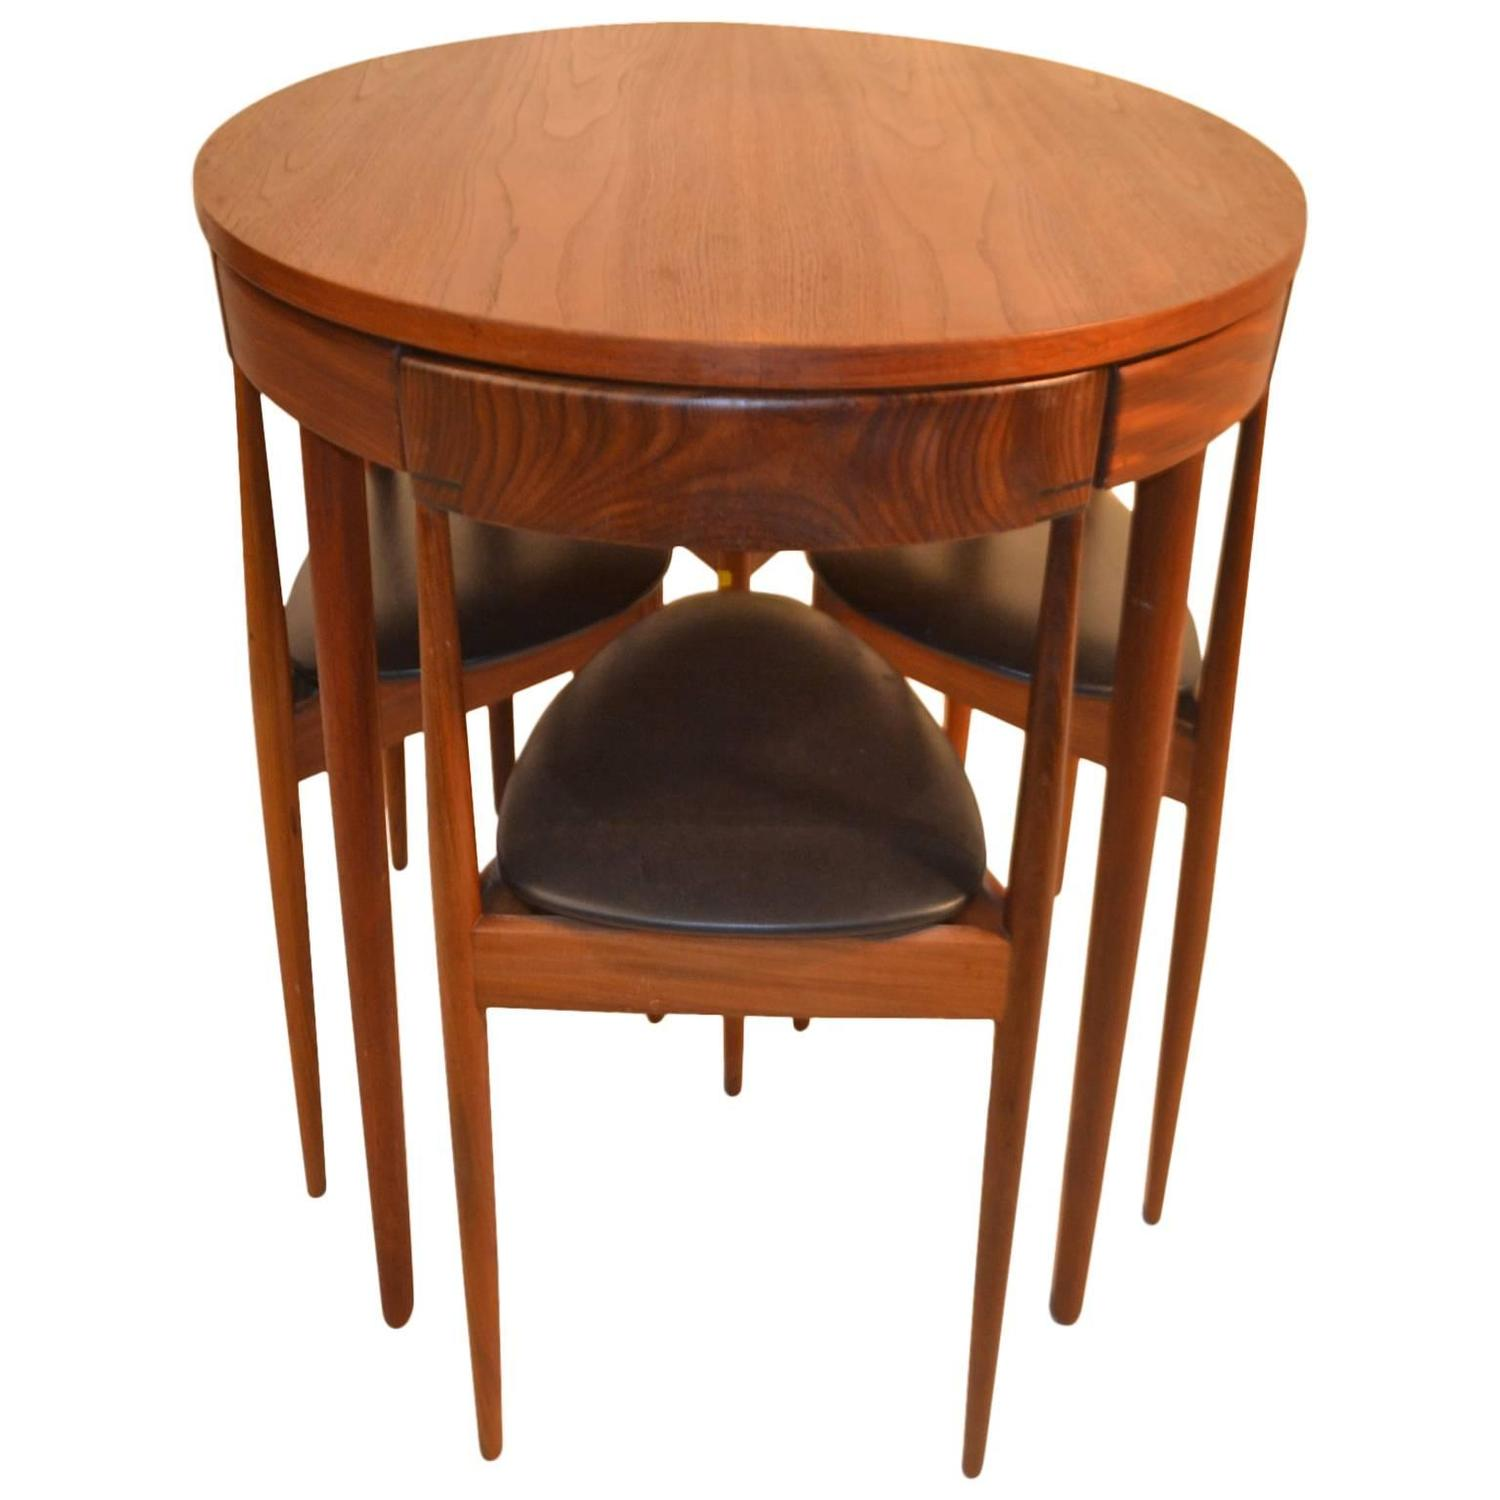 Teak Dining Table And Chairs: Danish Teak Dining Table And Chairs By Hans Olsen For Frem